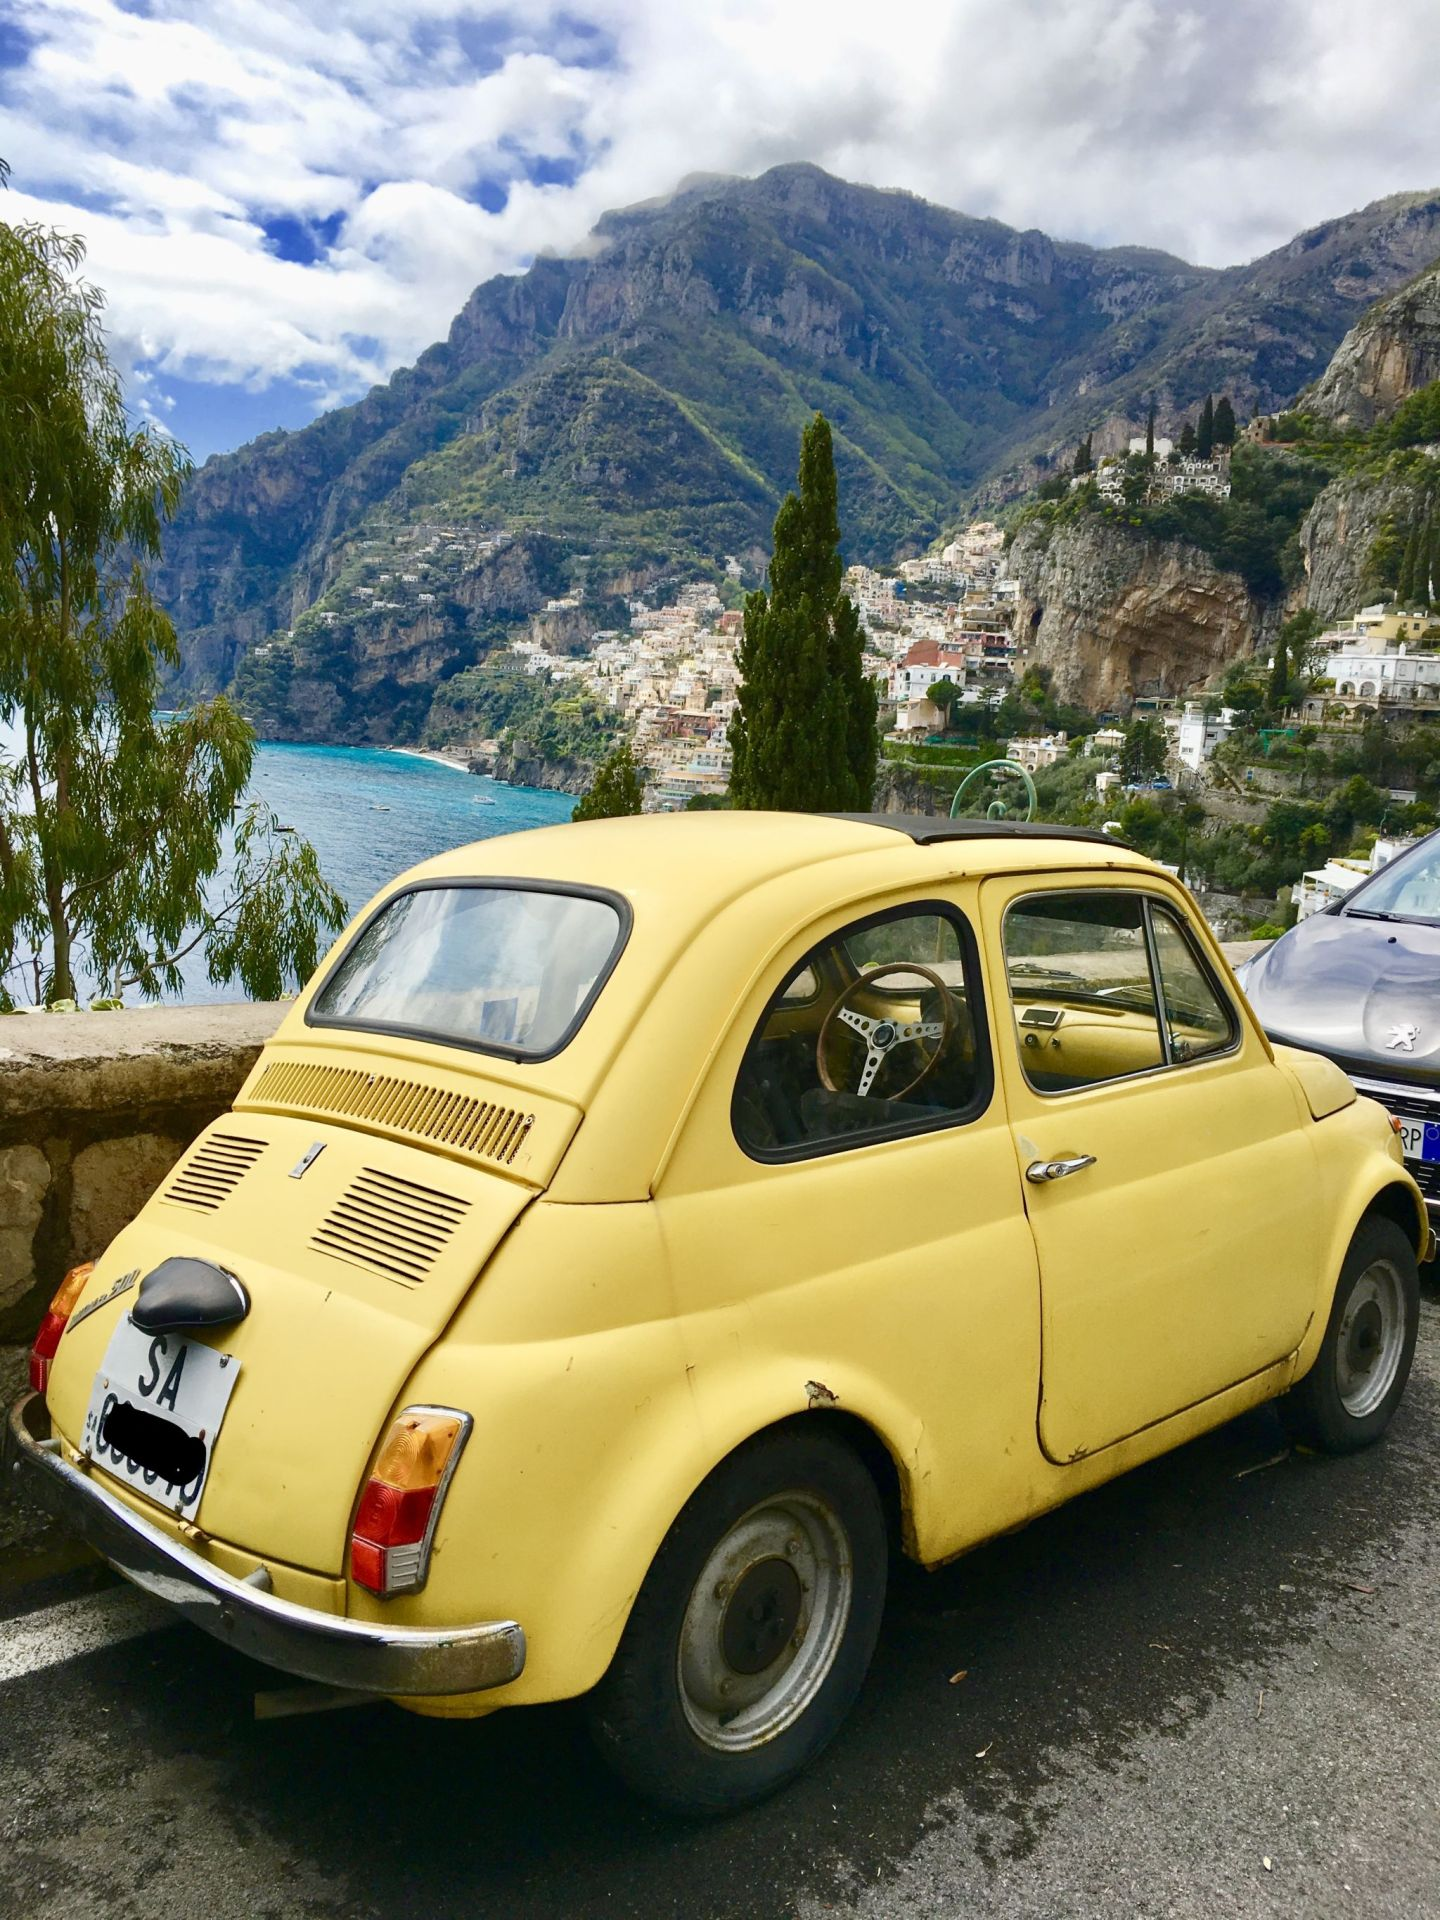 The smaller the better when selecting a car for a road trip along the Amalfi coast.